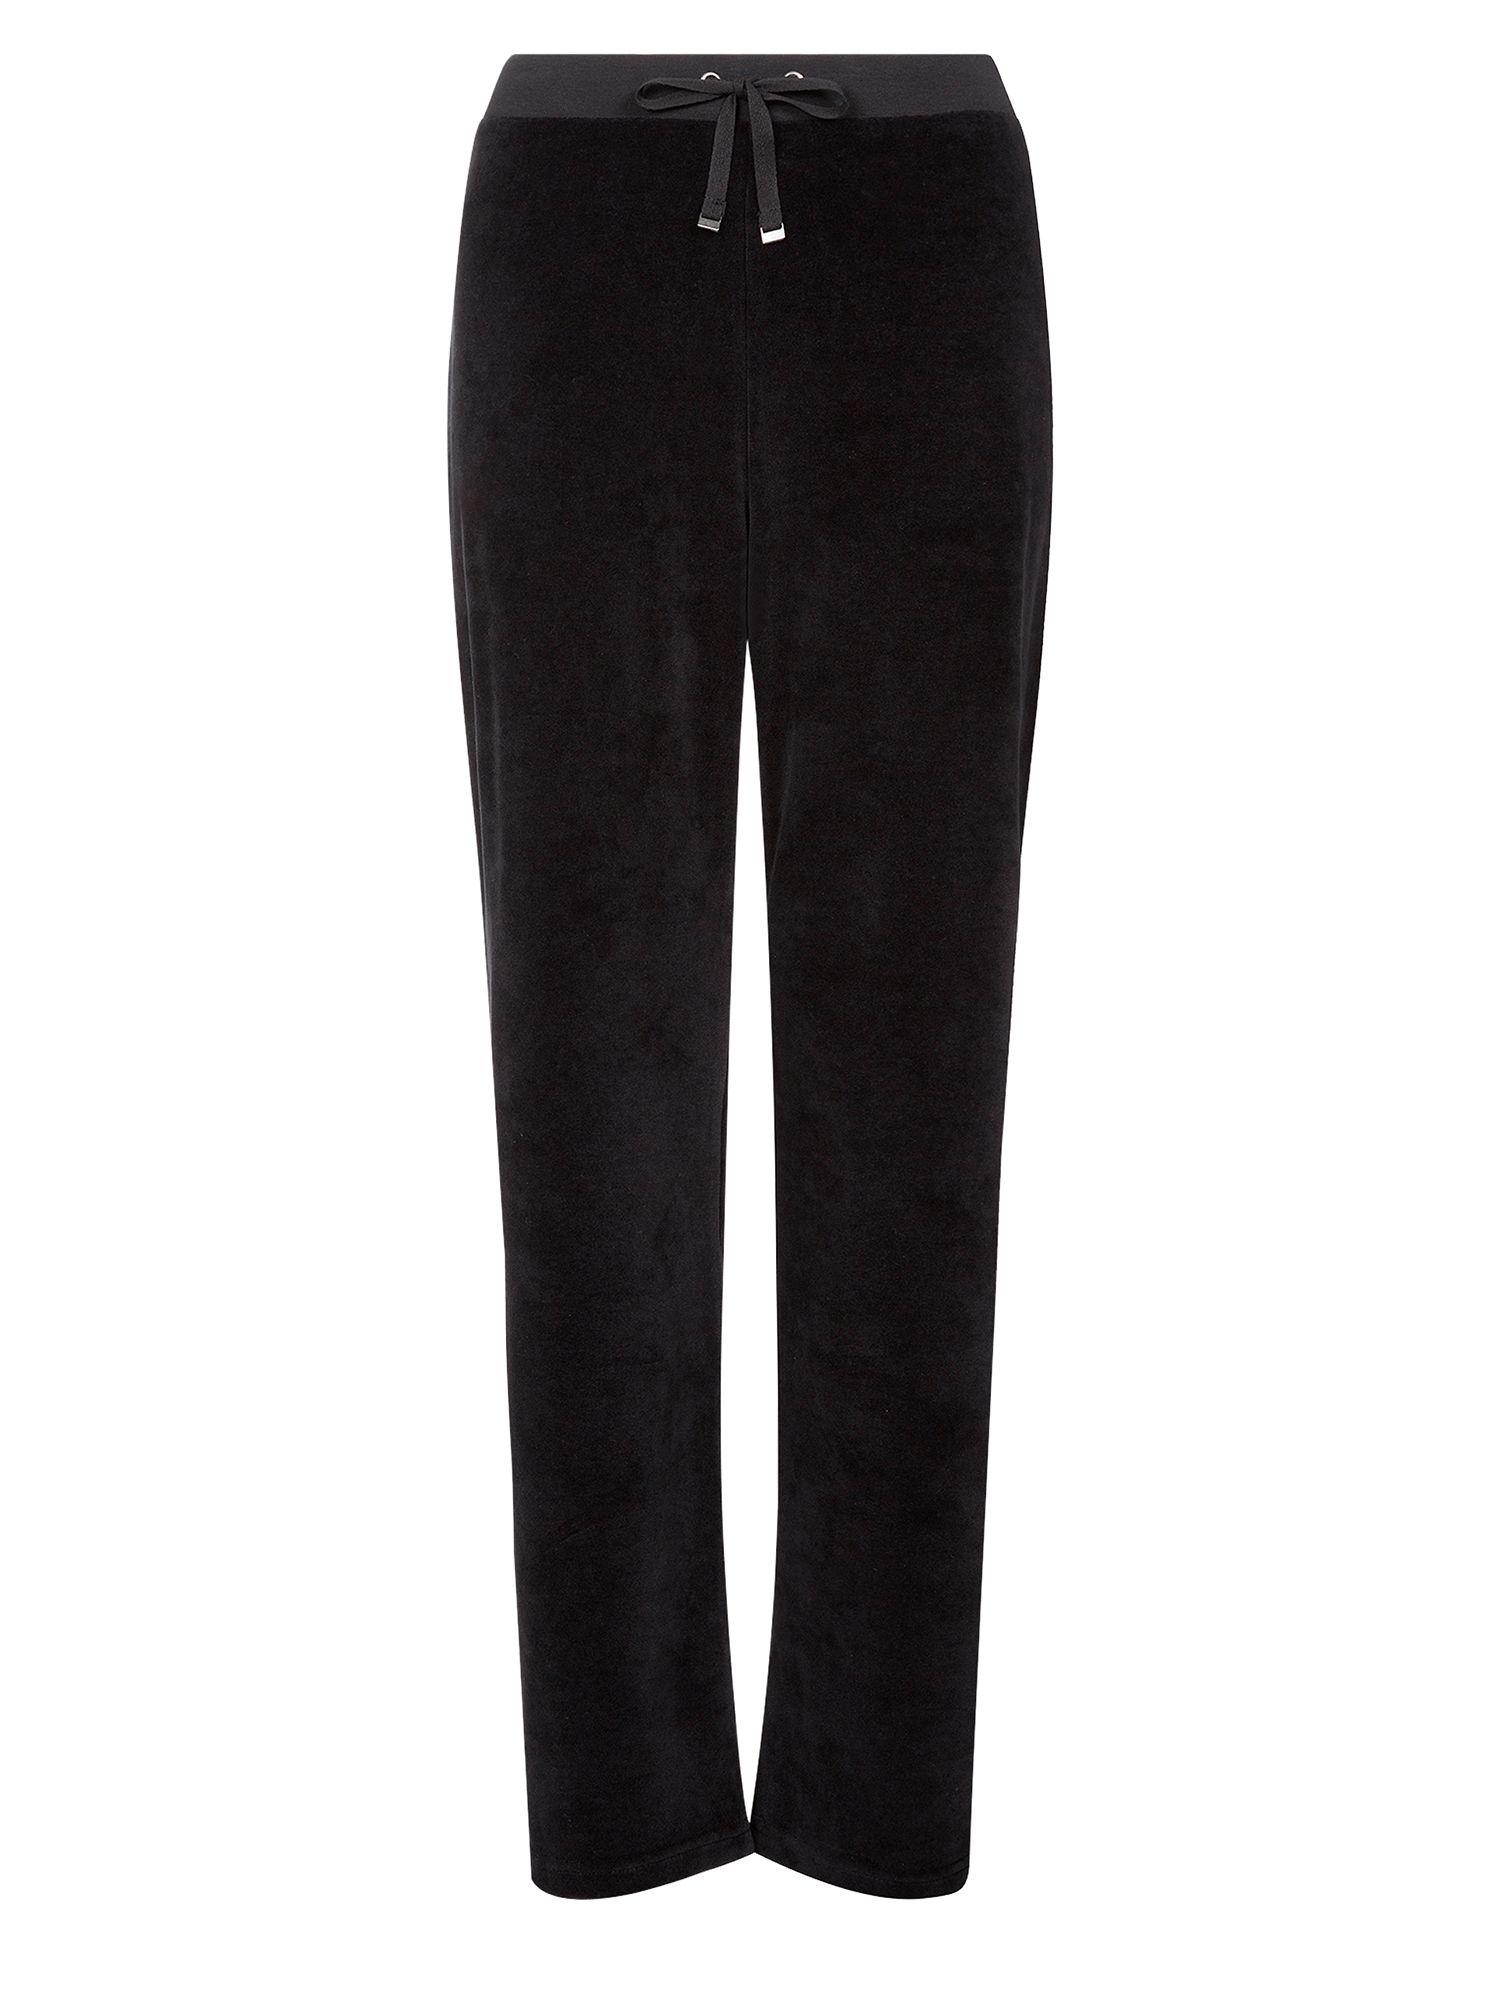 Product Description Easy and effortless, our velour pant is the ultimate lounge wear essential.